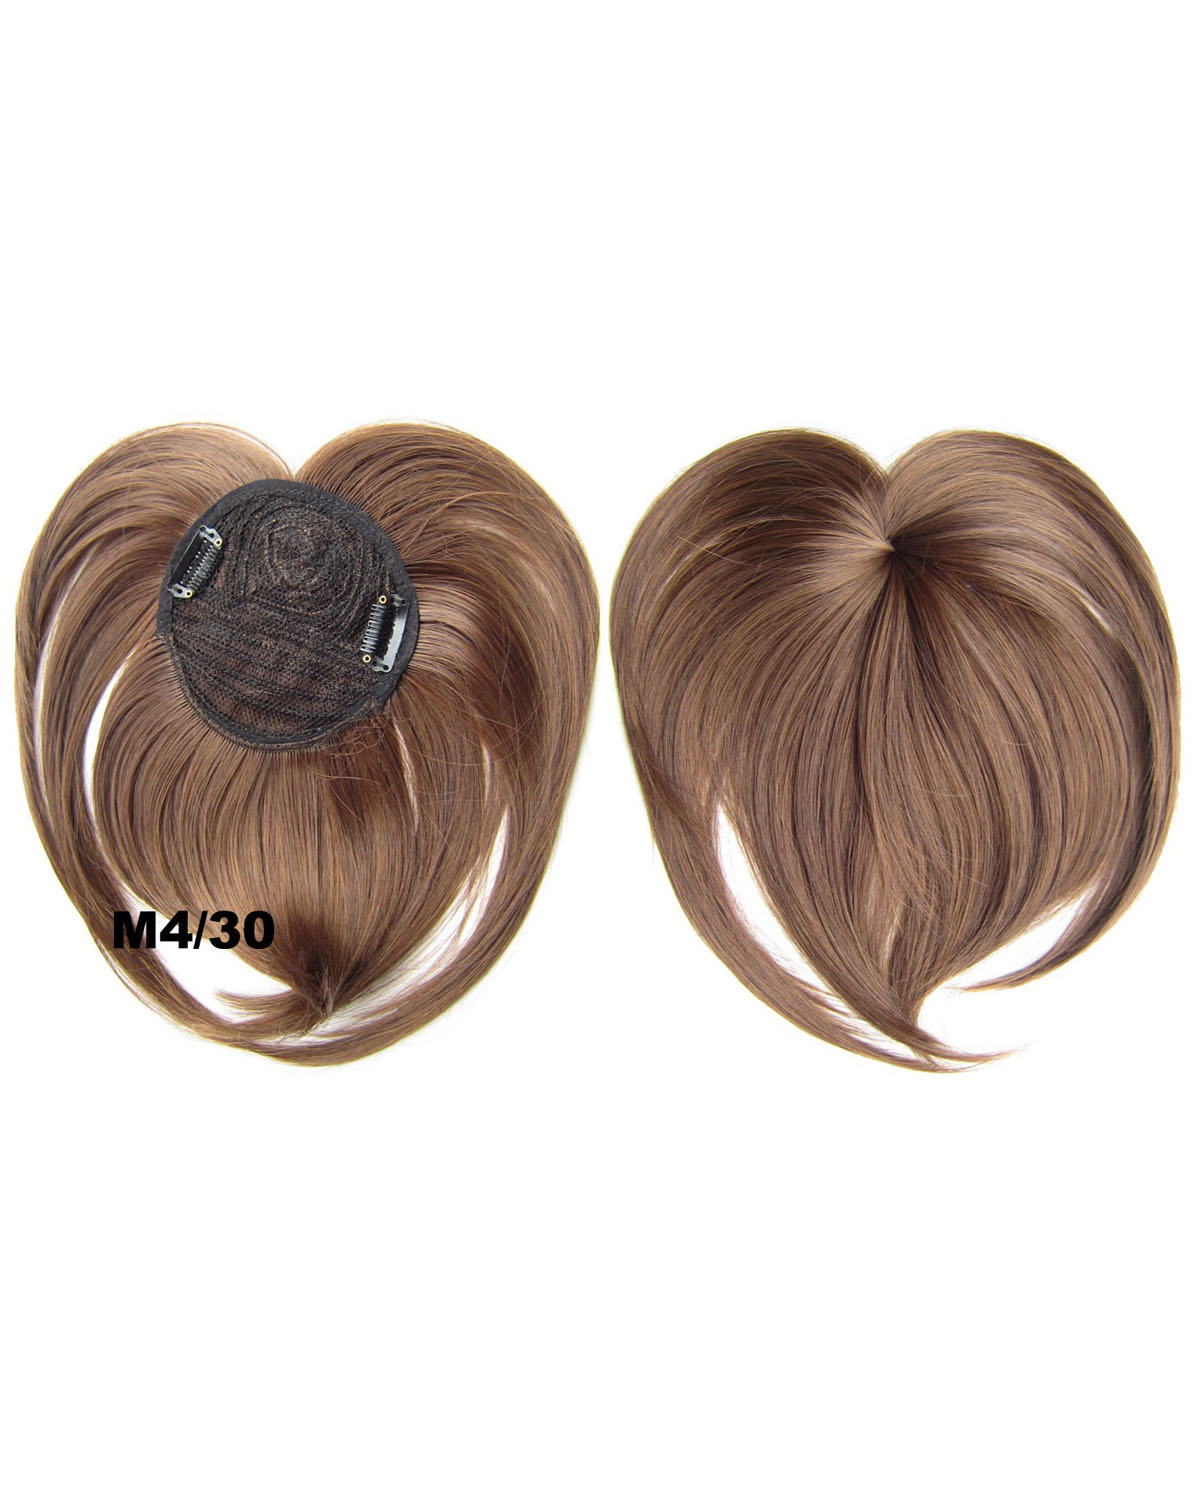 Girls Lustrous Straight Short Bangs Clip in Synthetic Hair Extension Fringe Bangs Hairpiece M4/30#